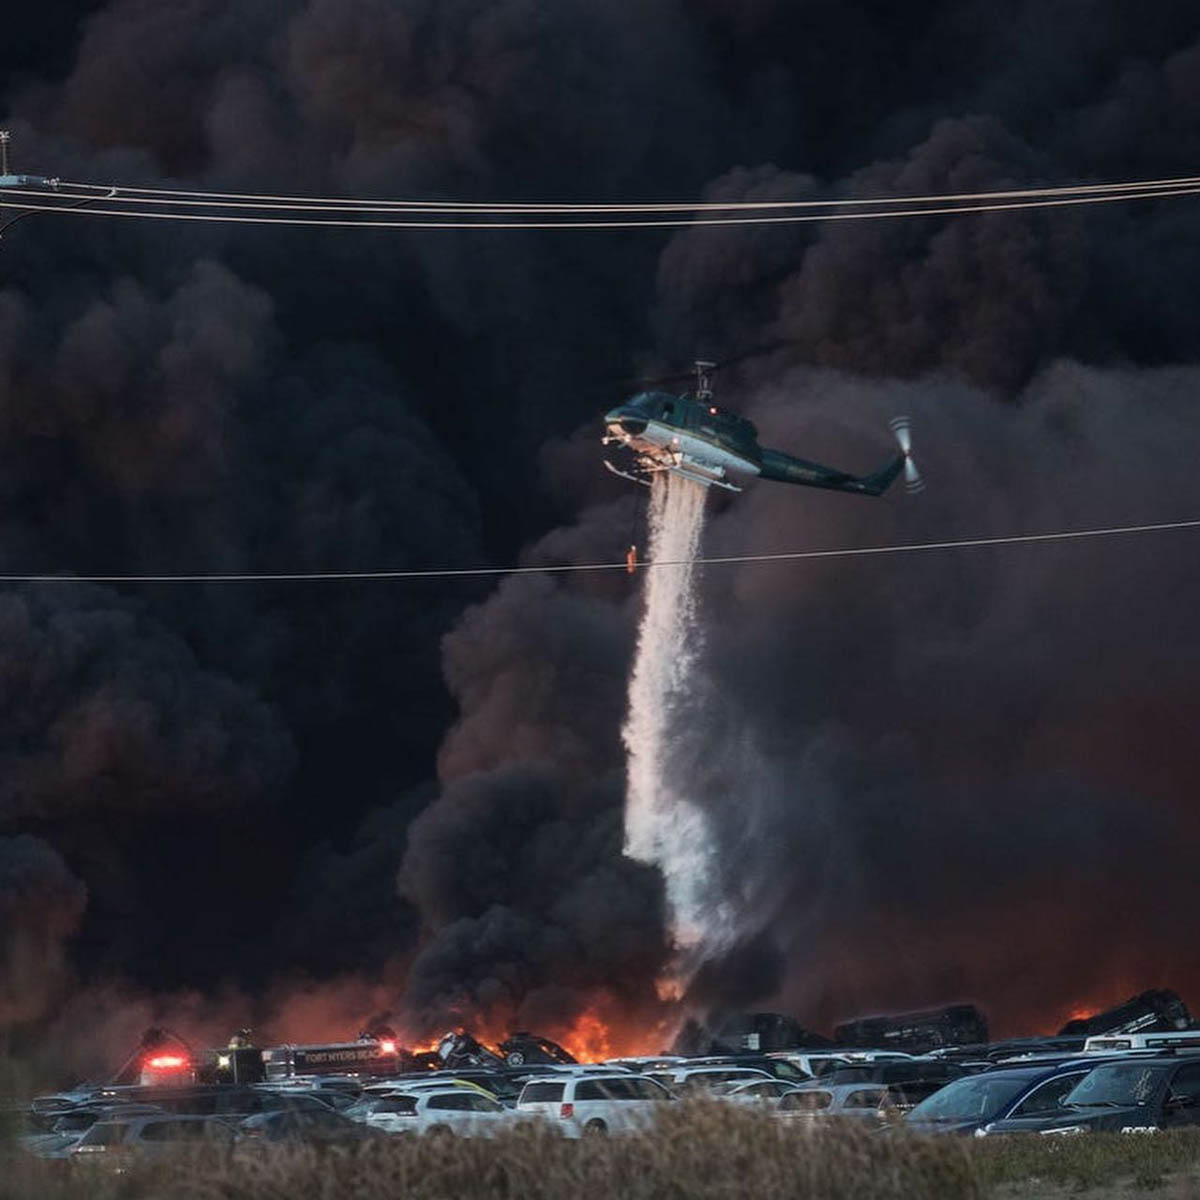 helicopter rental cars burn fire Fort Myers Airport